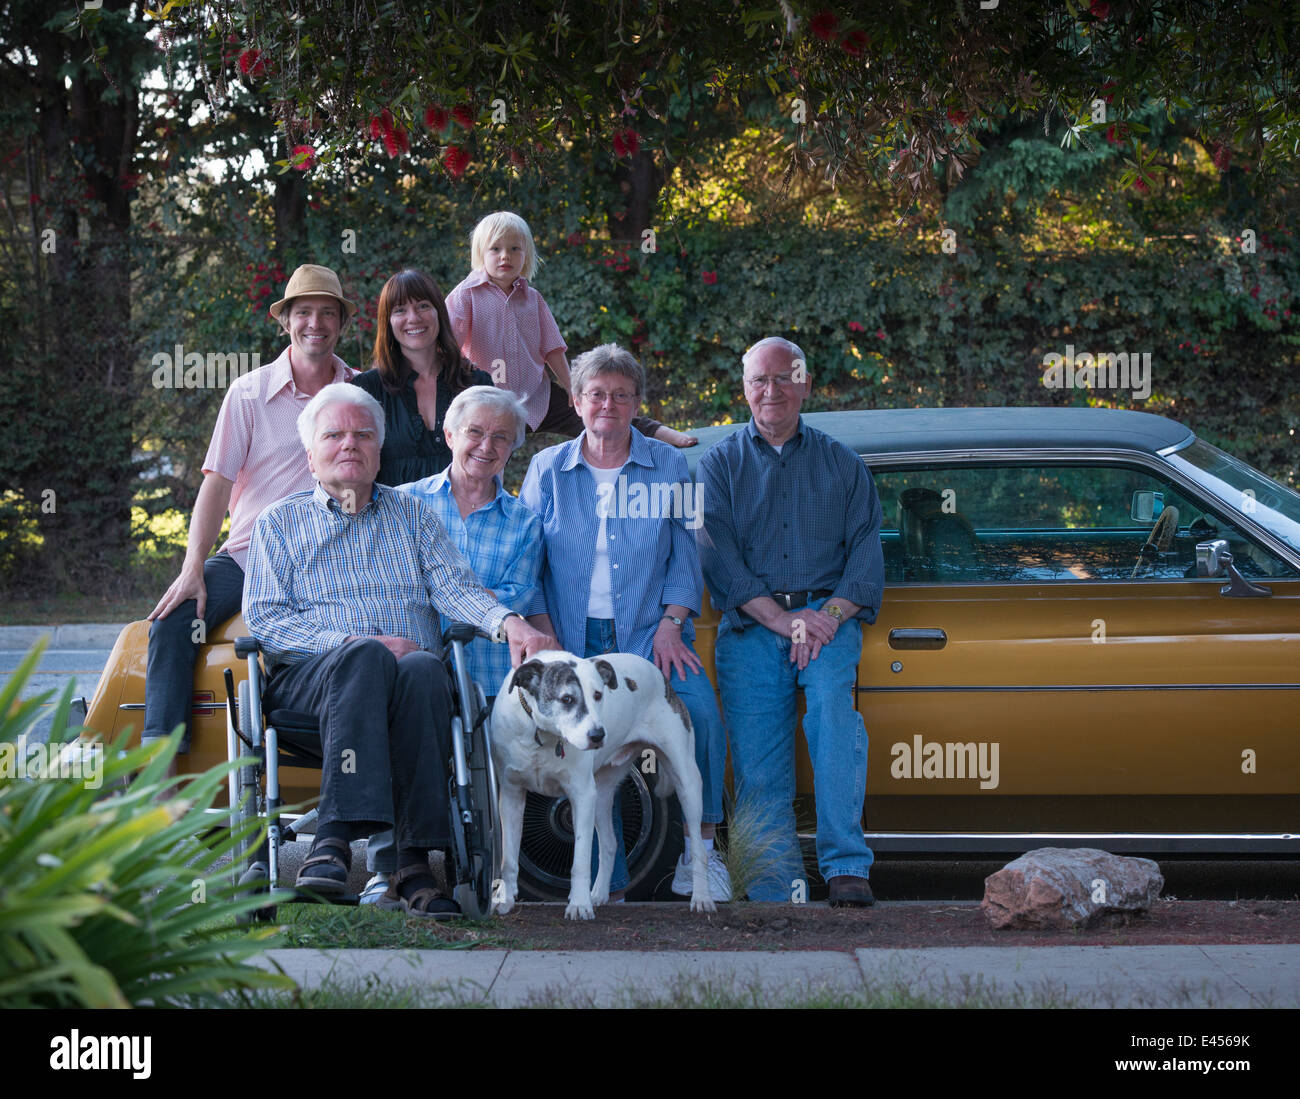 Three generation family portrait with dog - Stock Image